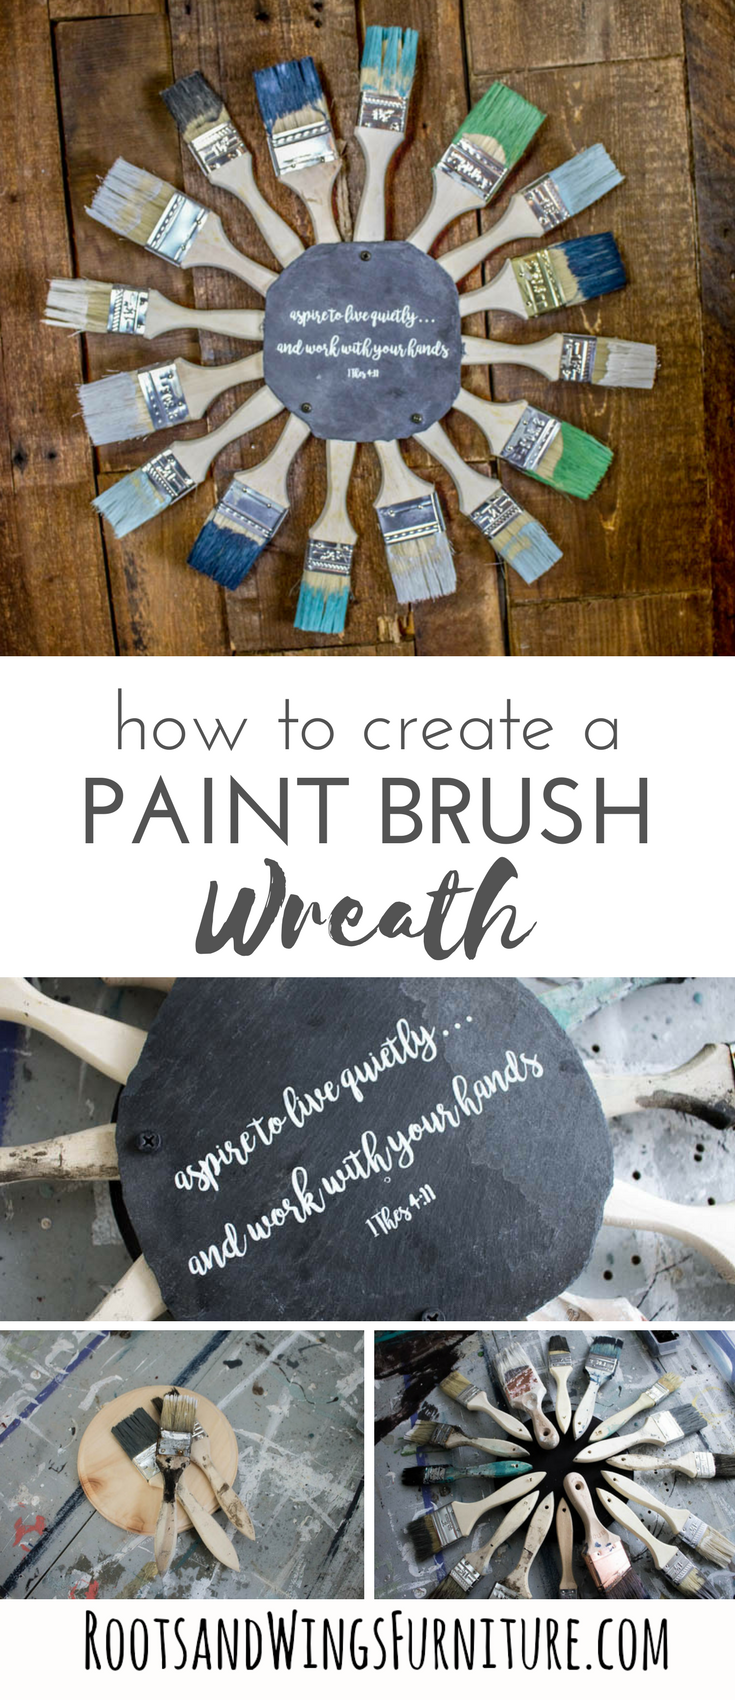 http://www.rootsandwingsfurniture.com/blog/paintbrushwreath